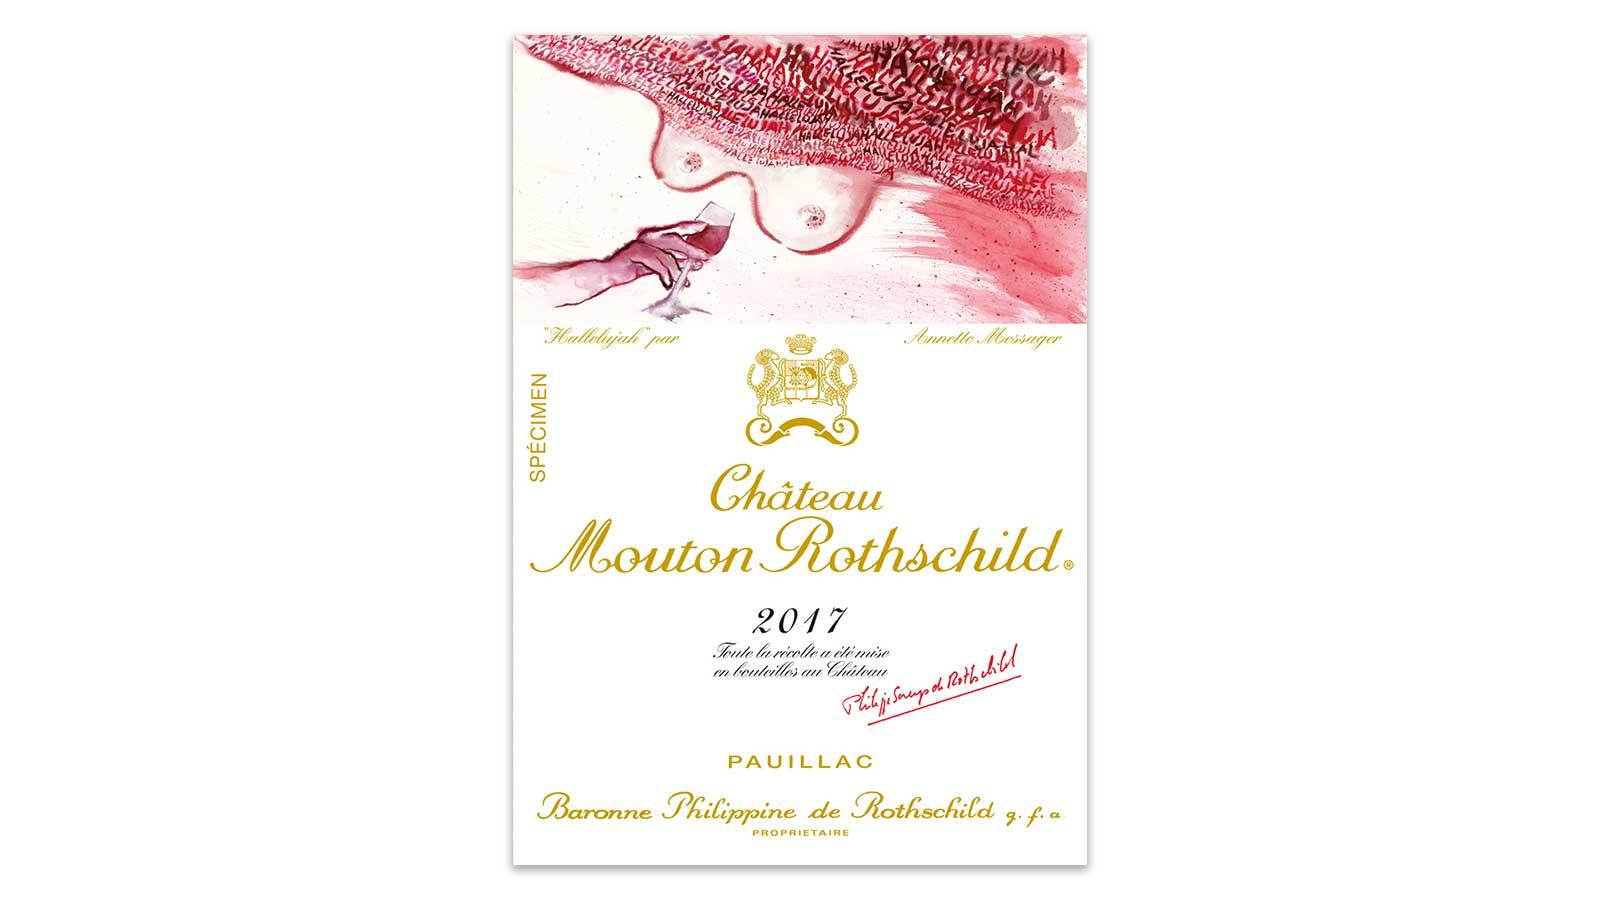 Mouton-Rothschild 2017 label